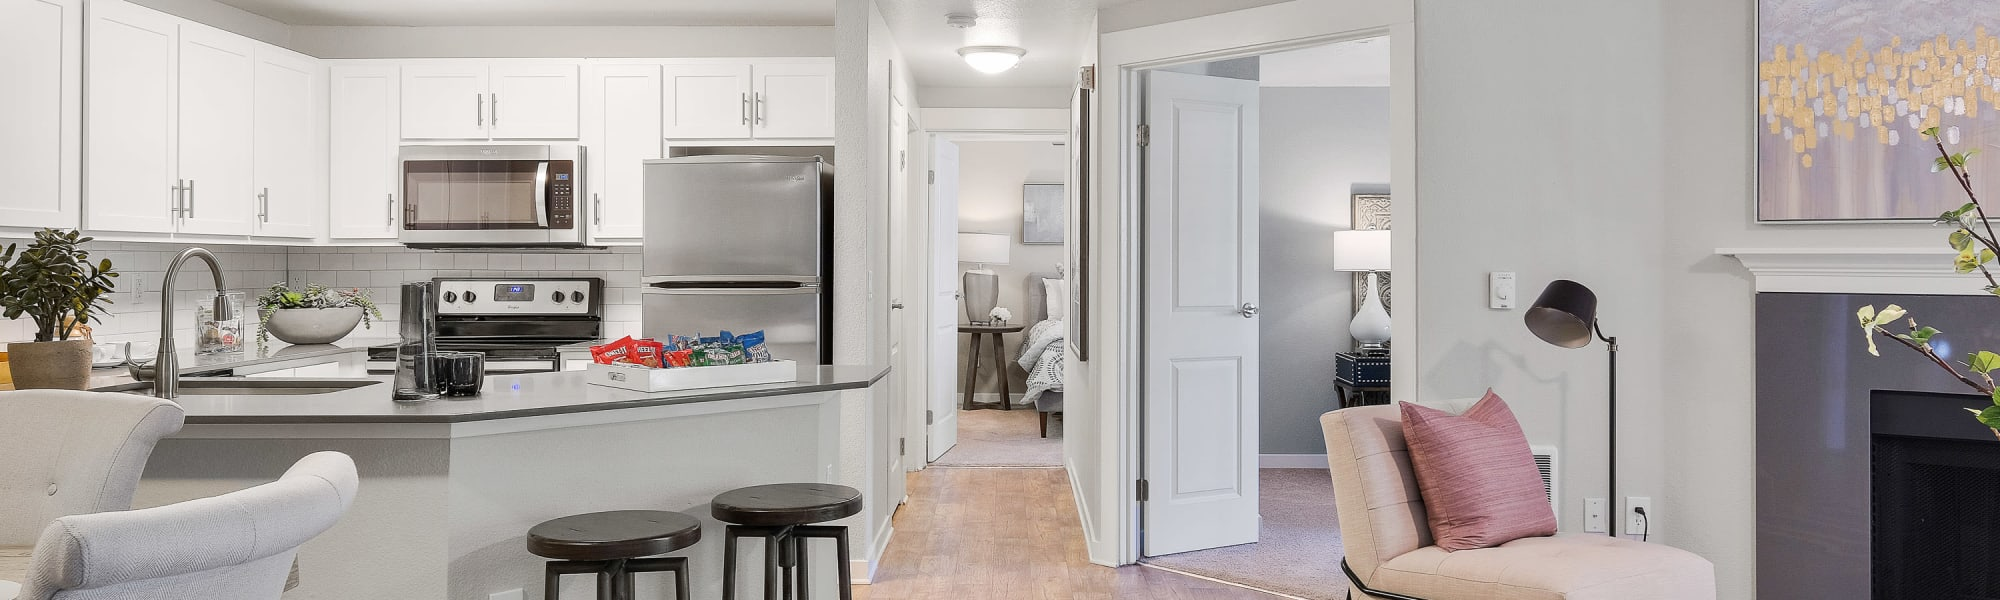 1 2 Bedroom Apartments For Rent In Hillsboro Or